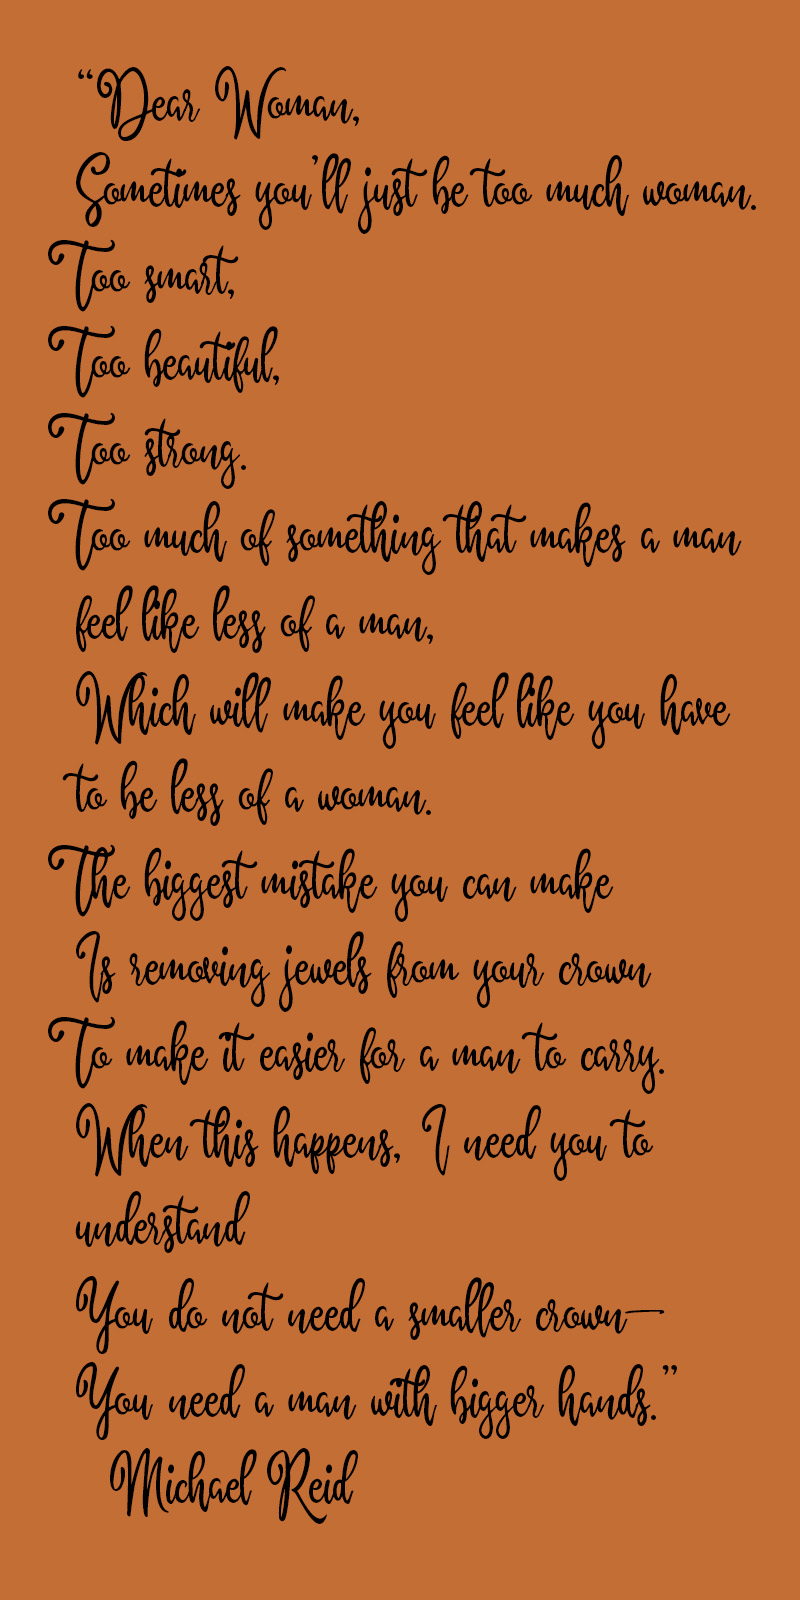 dear woman poem